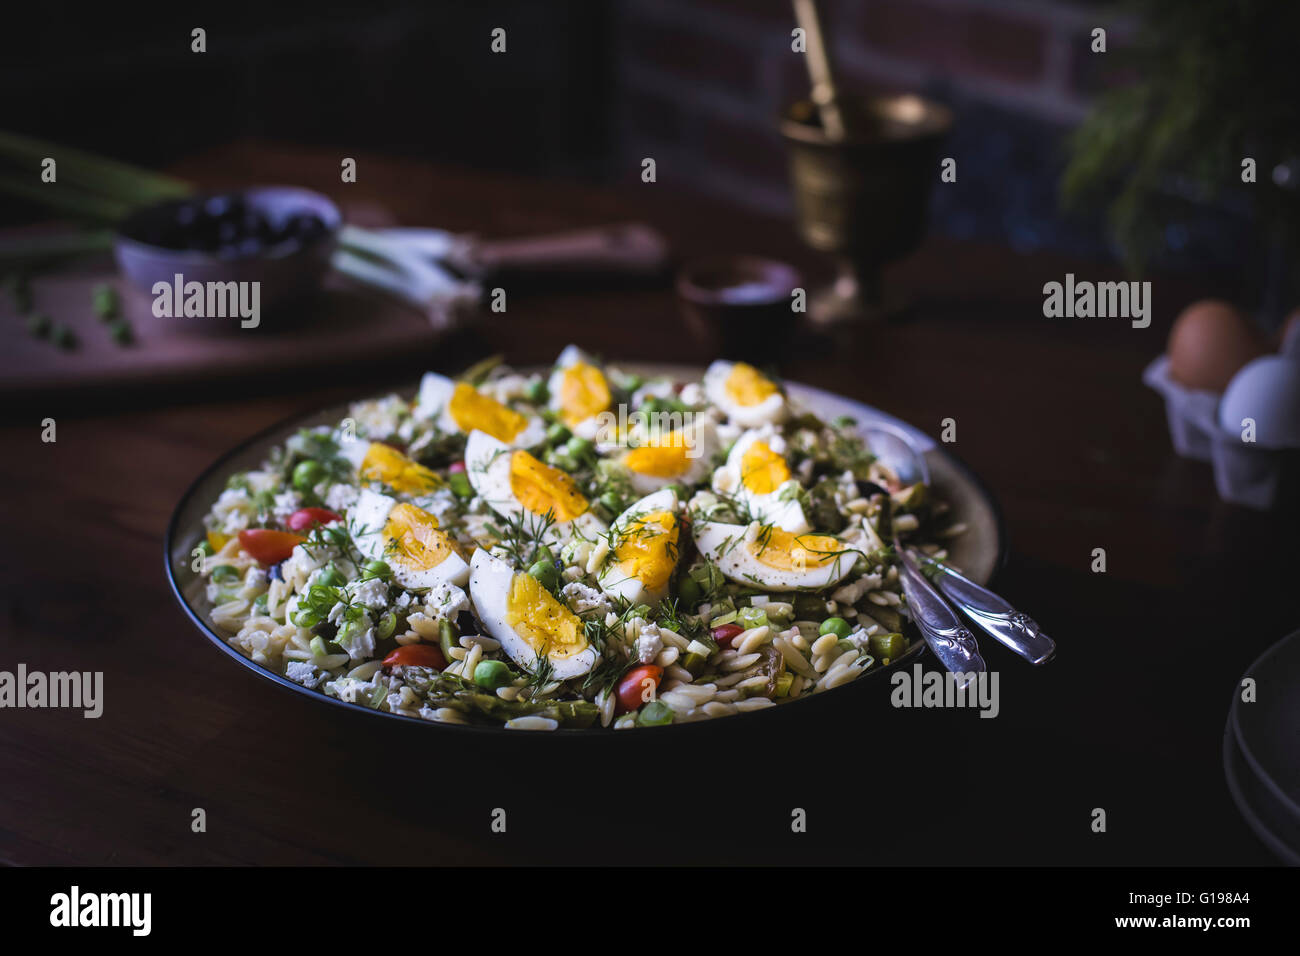 A large bowl of Mediterranean-Style Orzo Salad with Spring Vegetables is photographed from the front view. - Stock Image